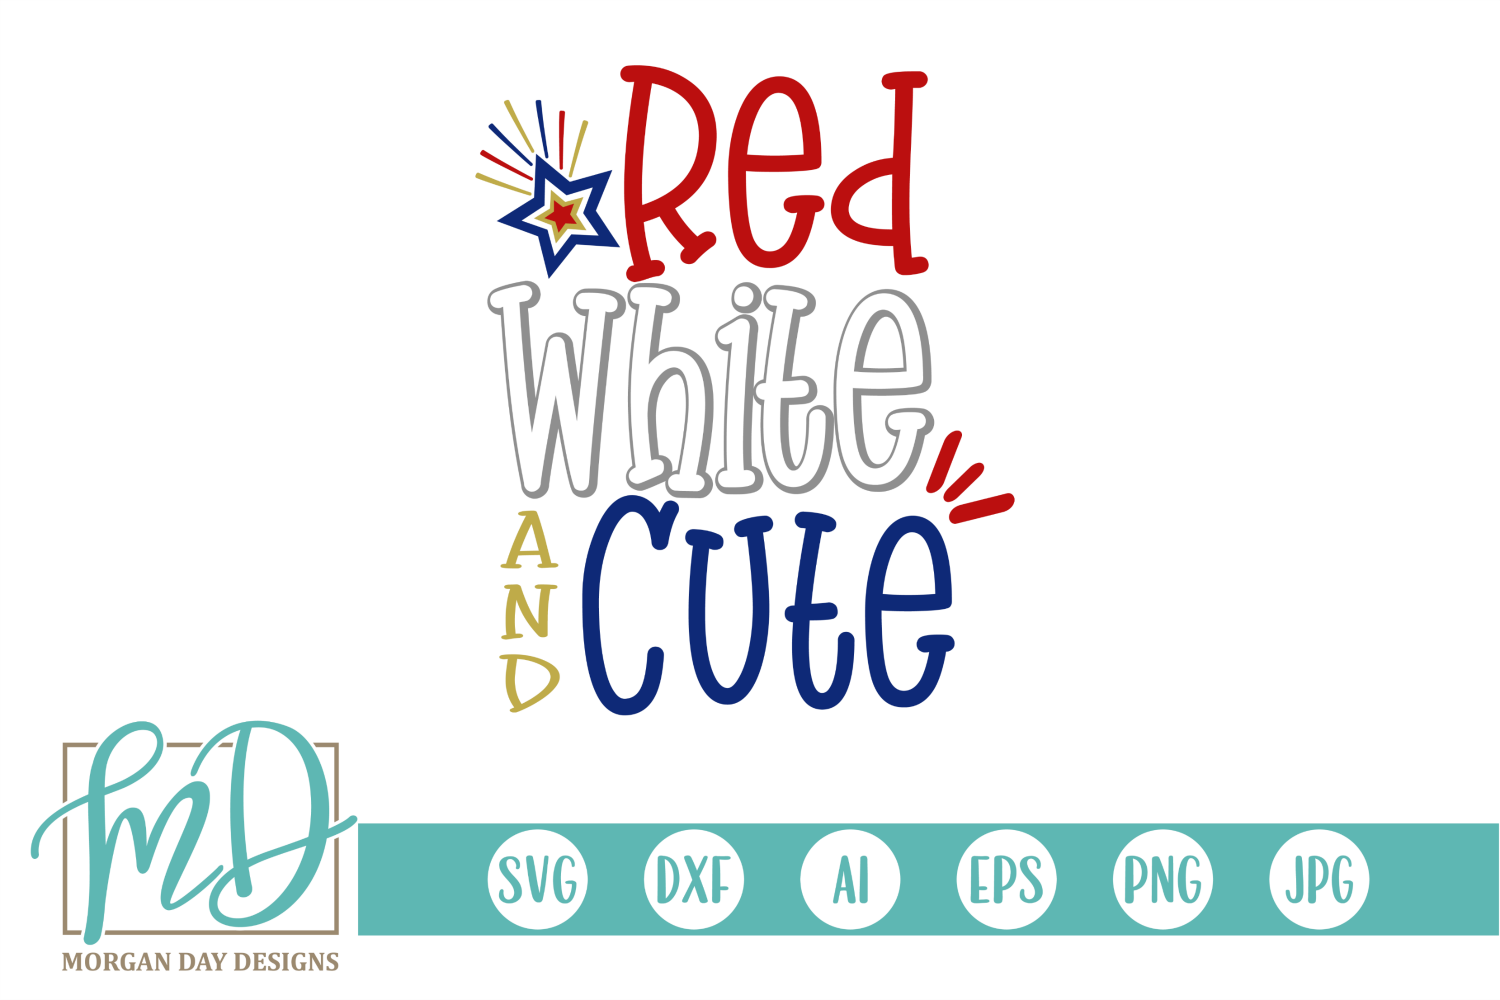 Red White And Cute Svg Graphic By Morgan Day Designs Creative